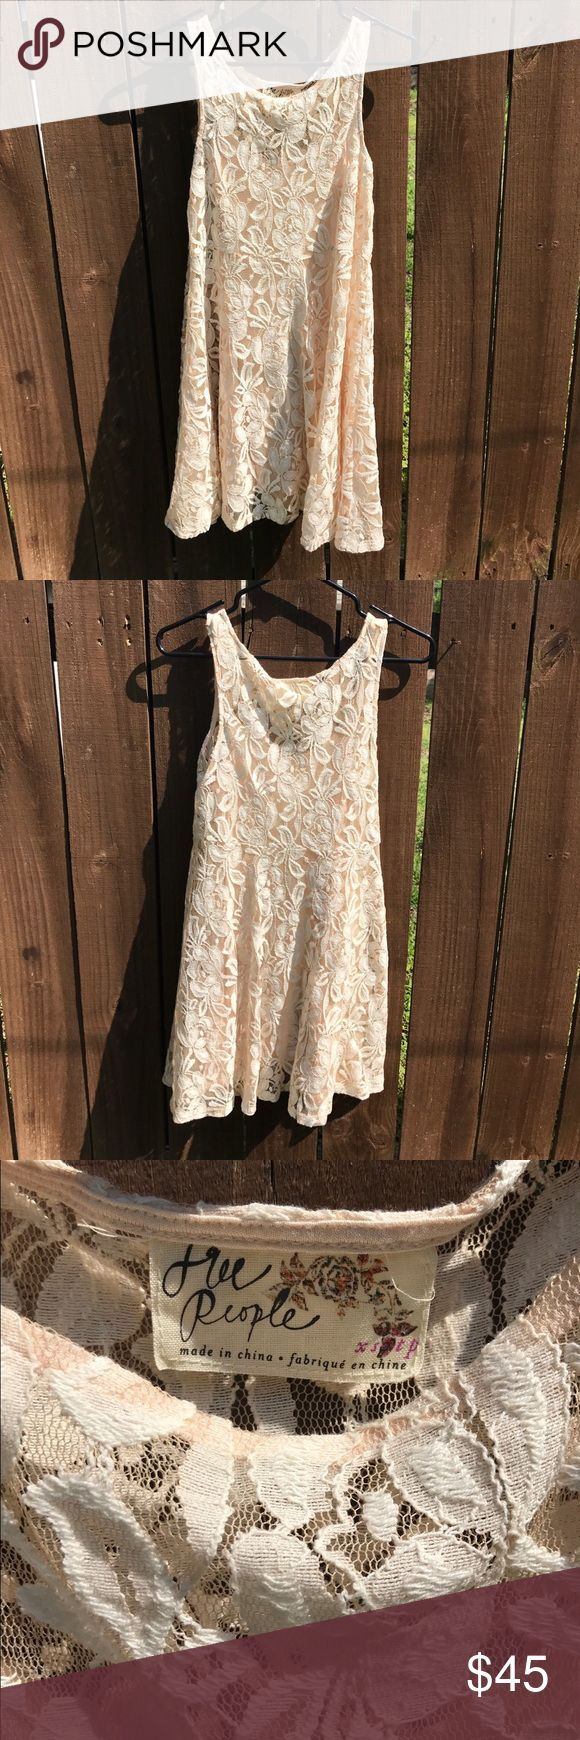 """Free People Lace Dress Gorgeous dress! Slip included. Like New. Only worn one time for my bridal shower 💍💐 29"""" in length, 16"""" pit to pit. Free People Dresses"""